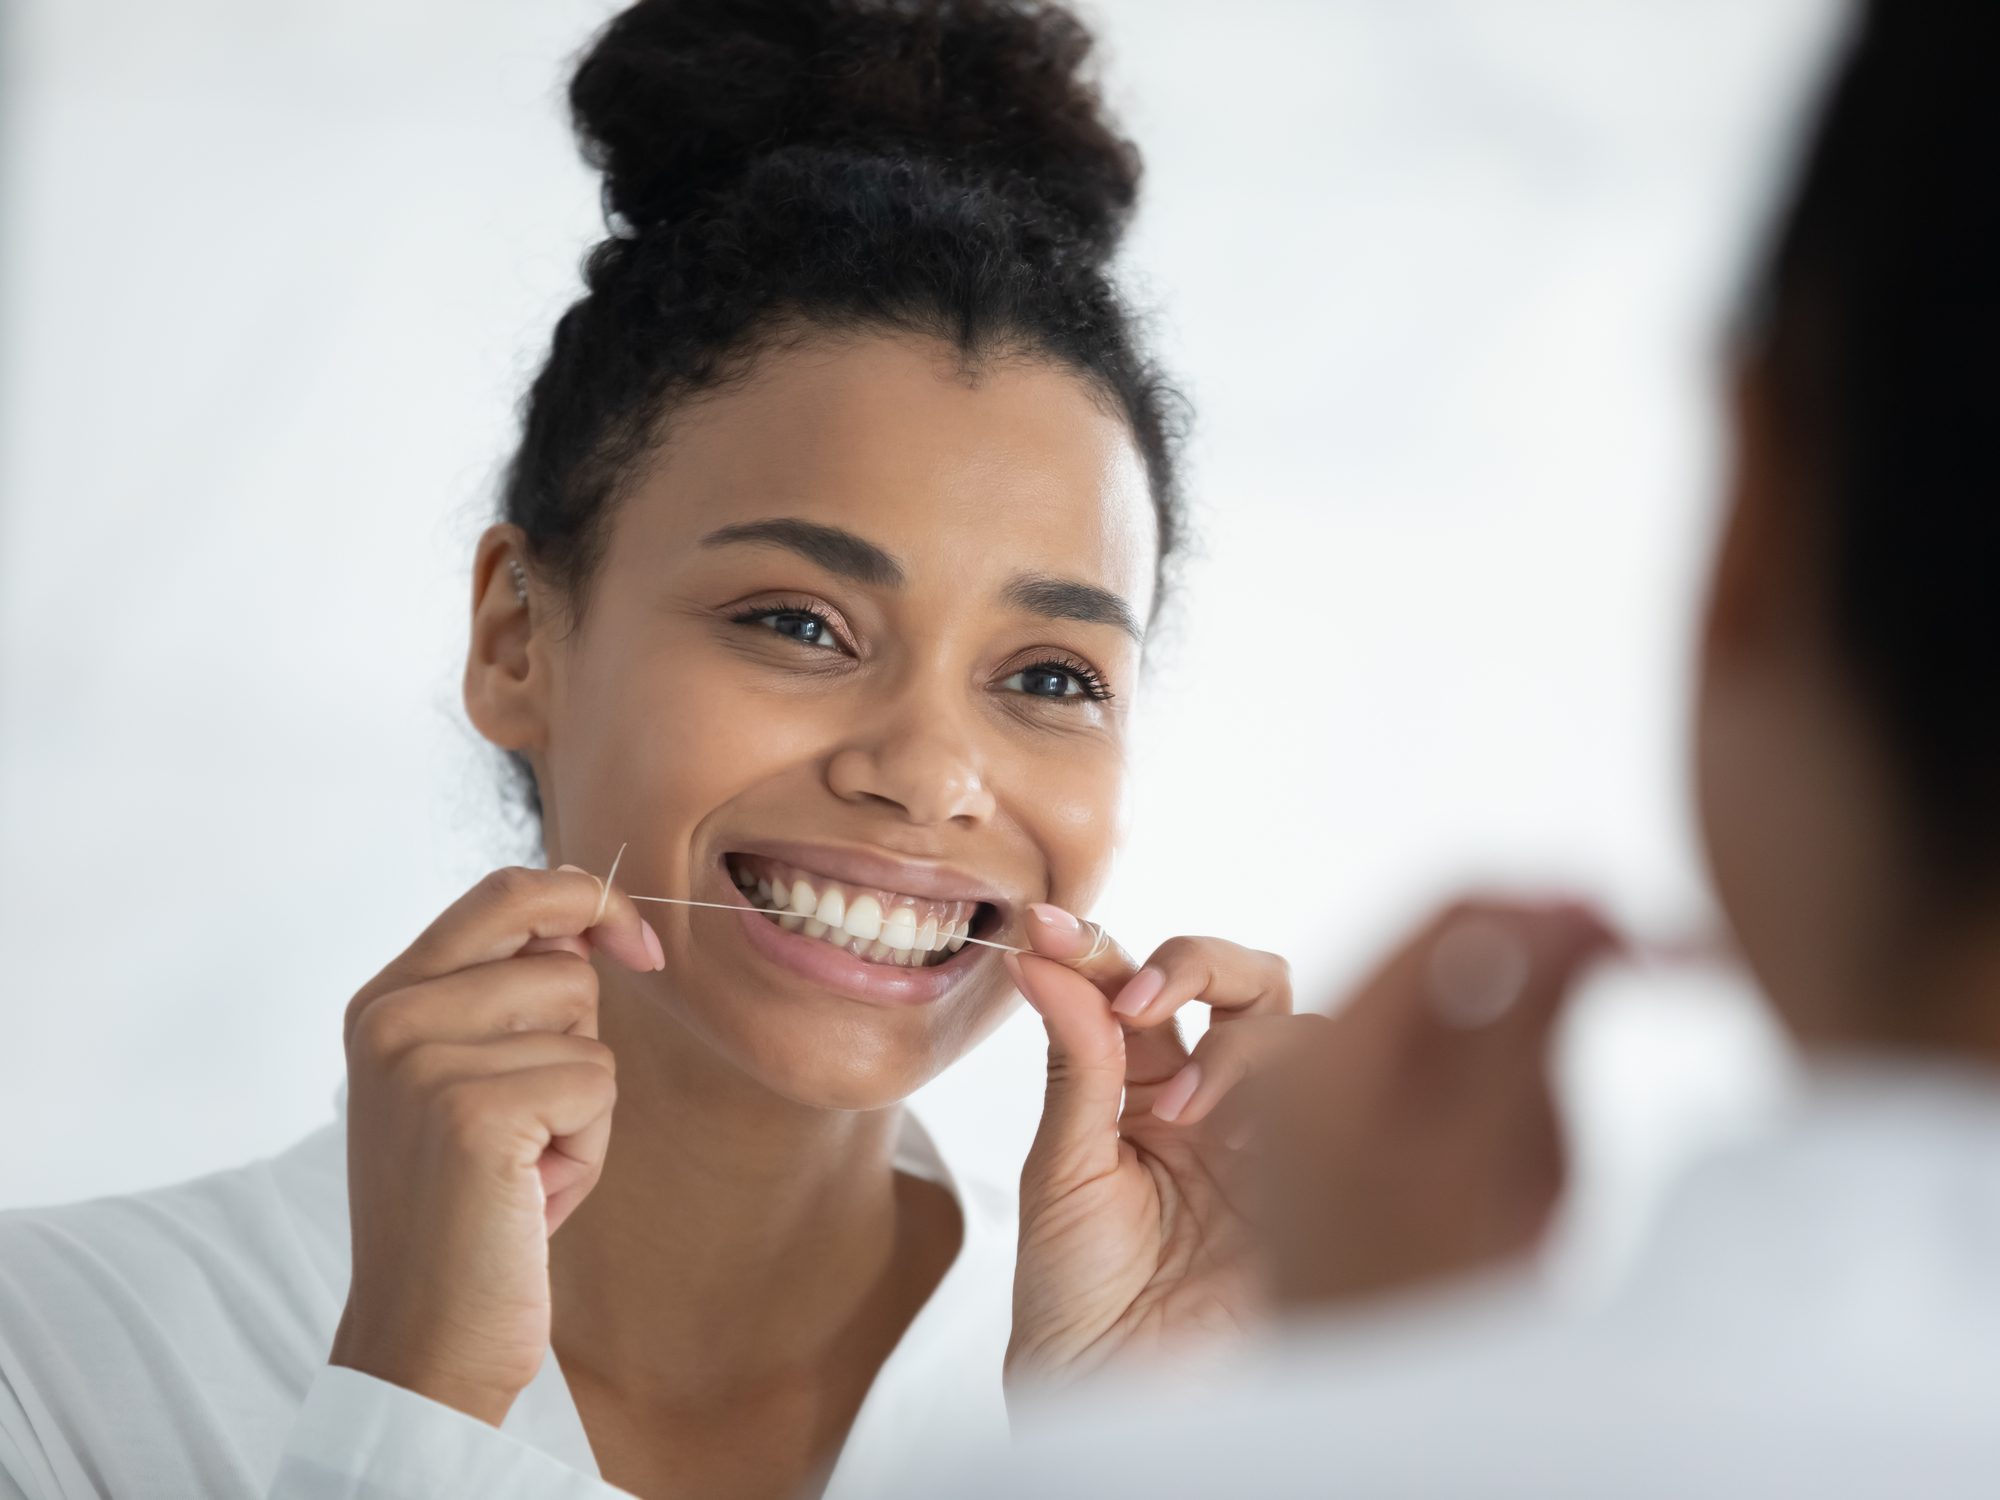 Why Should I Floss? - Why Brushing Isn't Enough